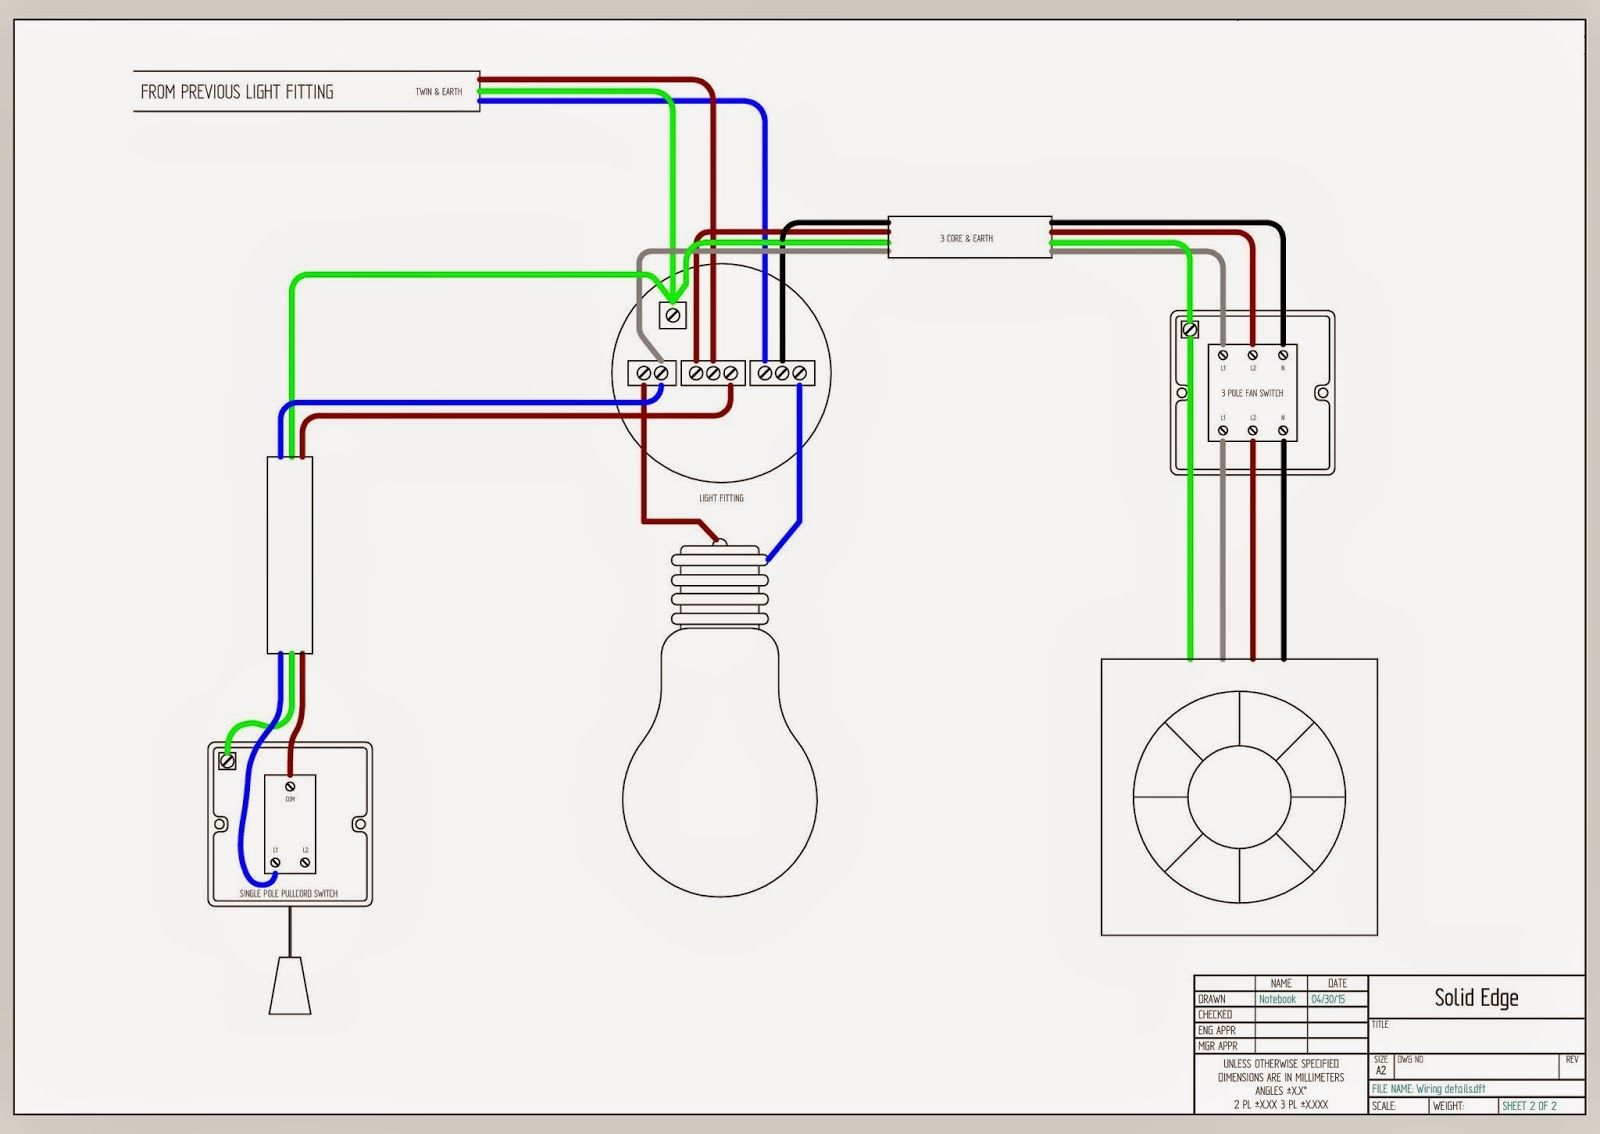 3bed5642162ea7921db5d6e9e0588c33 bathroom exhaust fan with light wiring diagram bathroom exclusiv 3 core and earth wiring diagram at virtualis.co